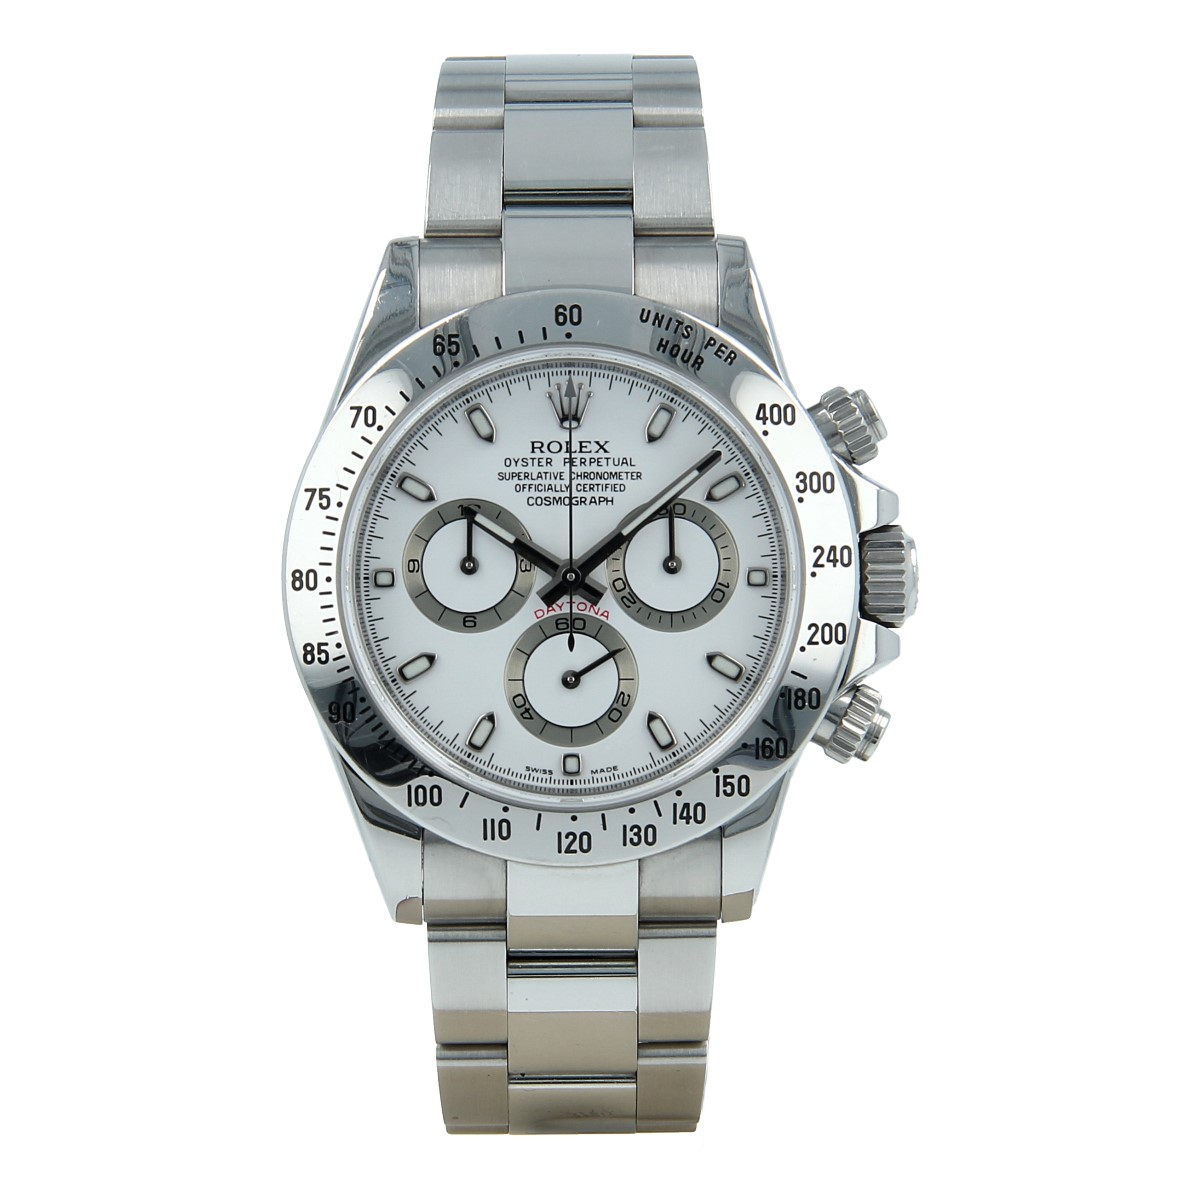 Rolex Daytona 116520 White Dial *Full Set* | Buy second-hand Rolex watch